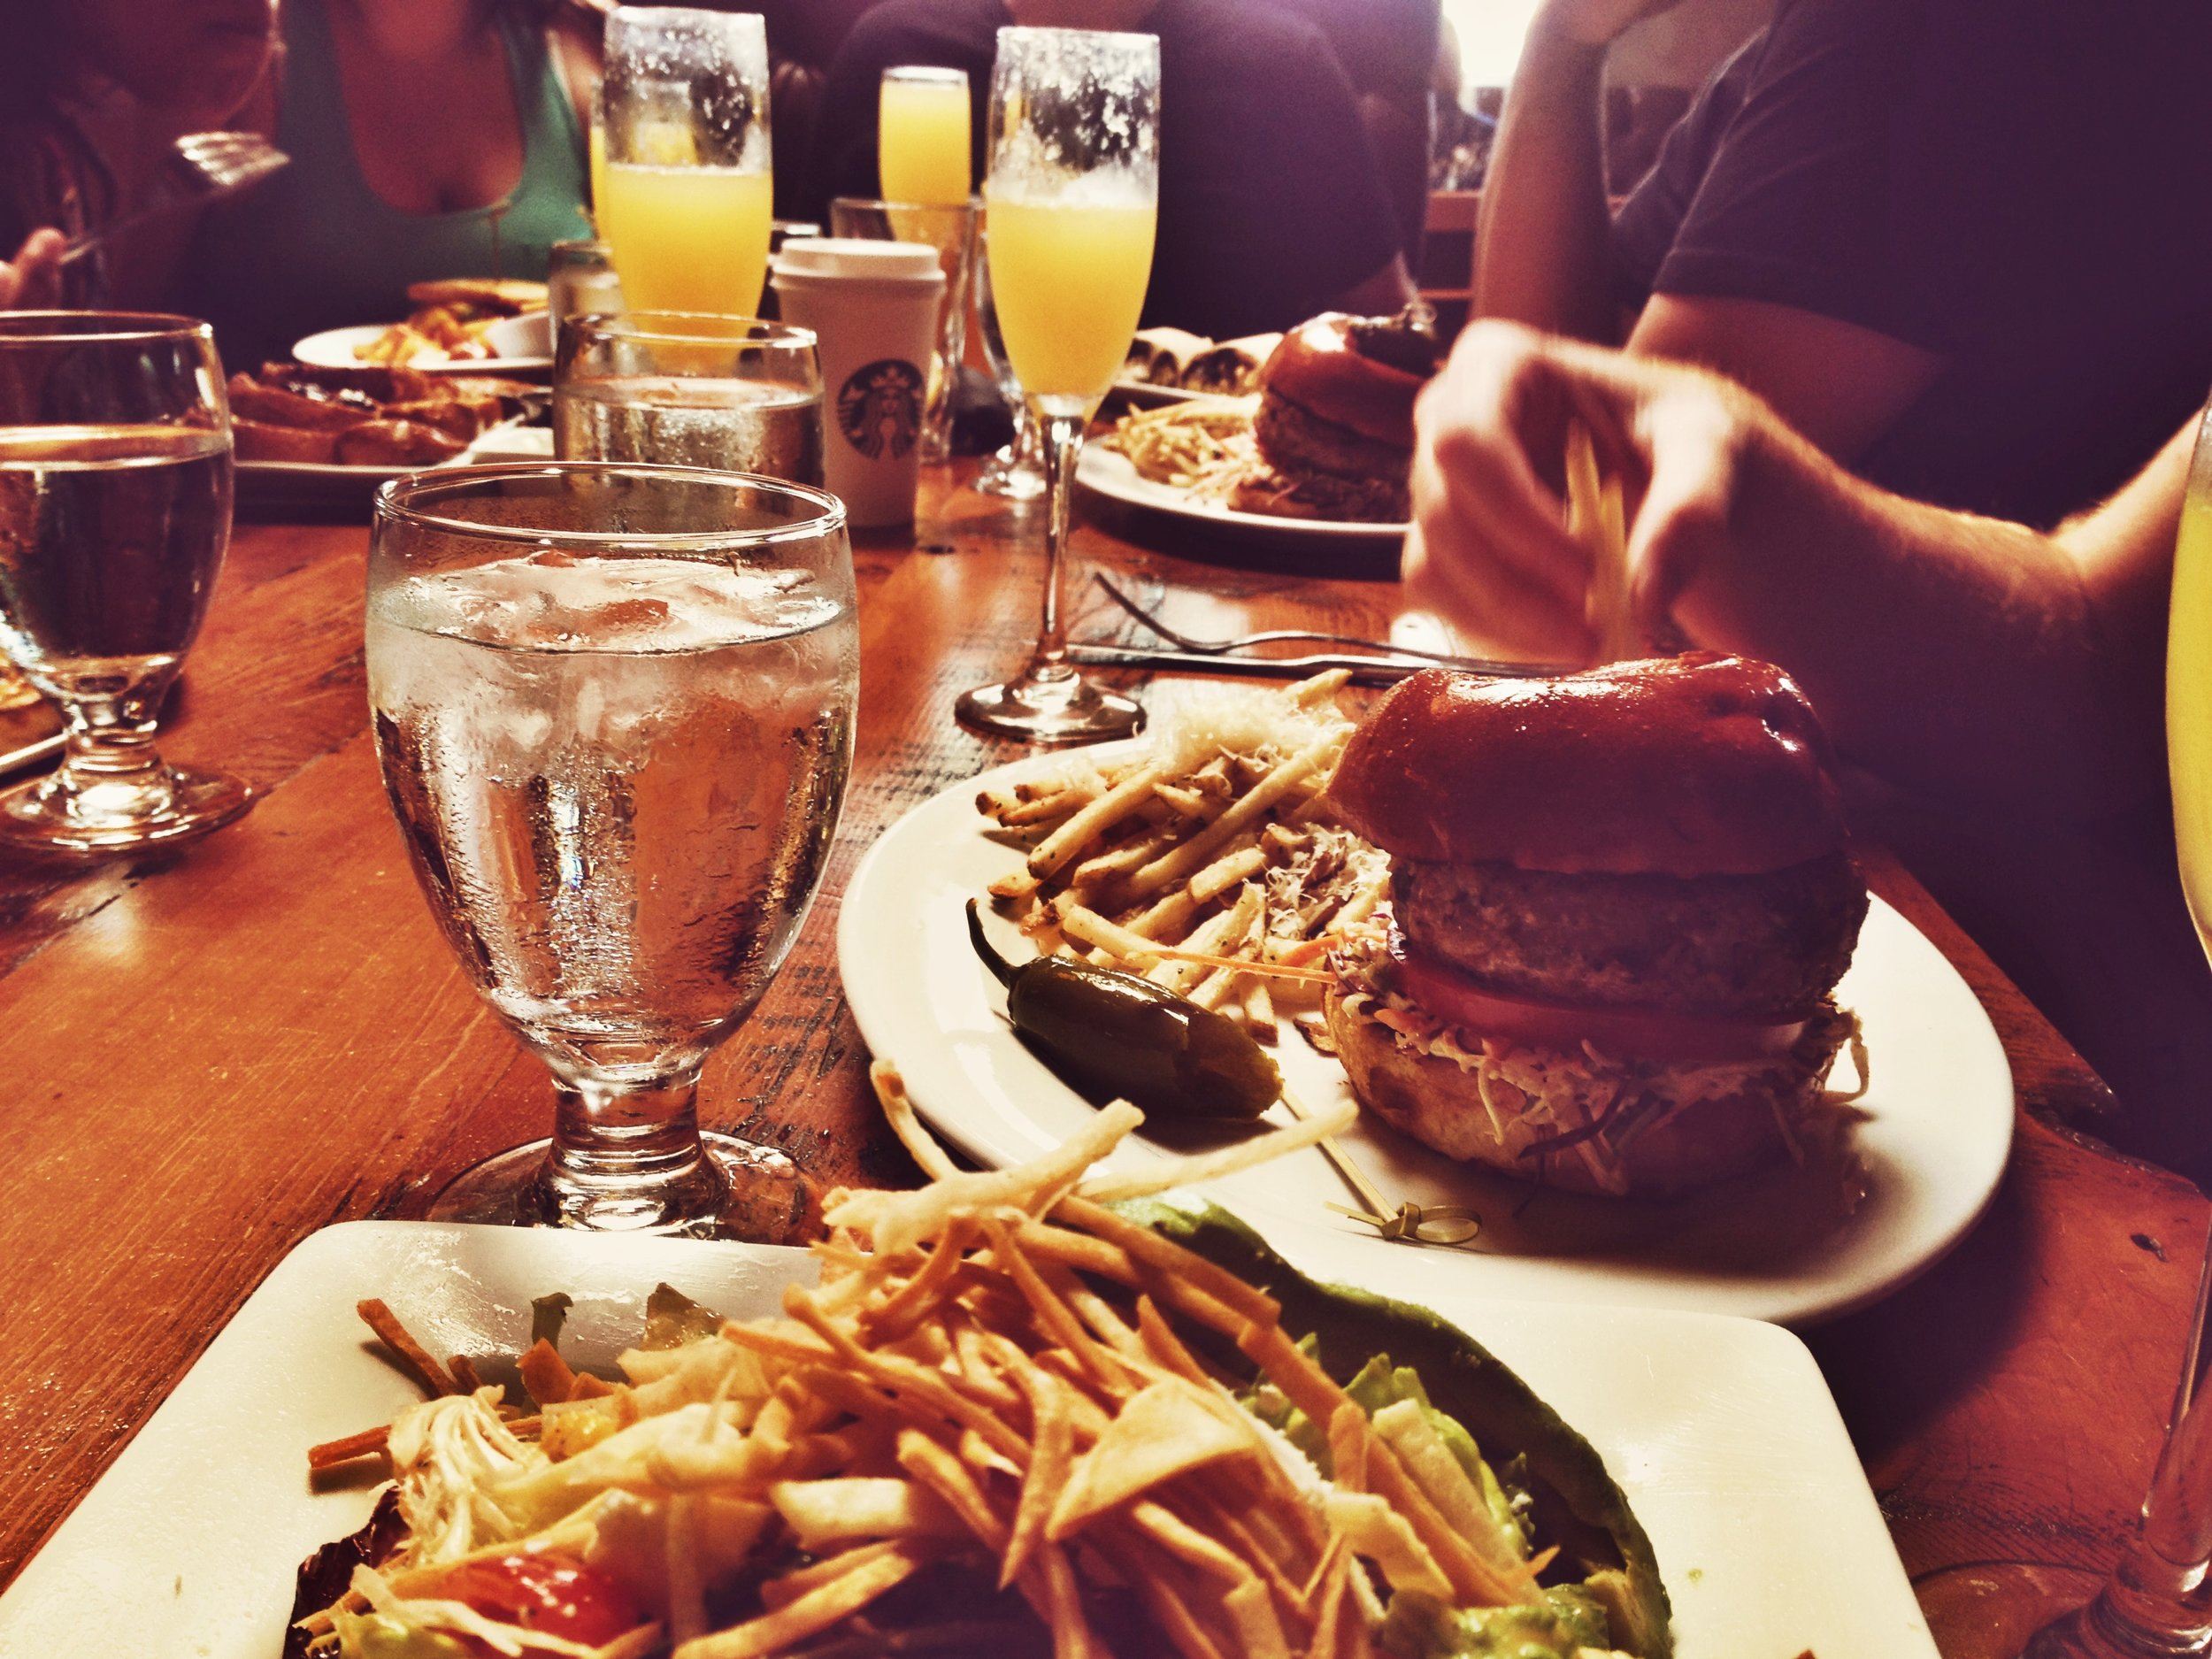 A boozy brunch at Brick + Mortar.